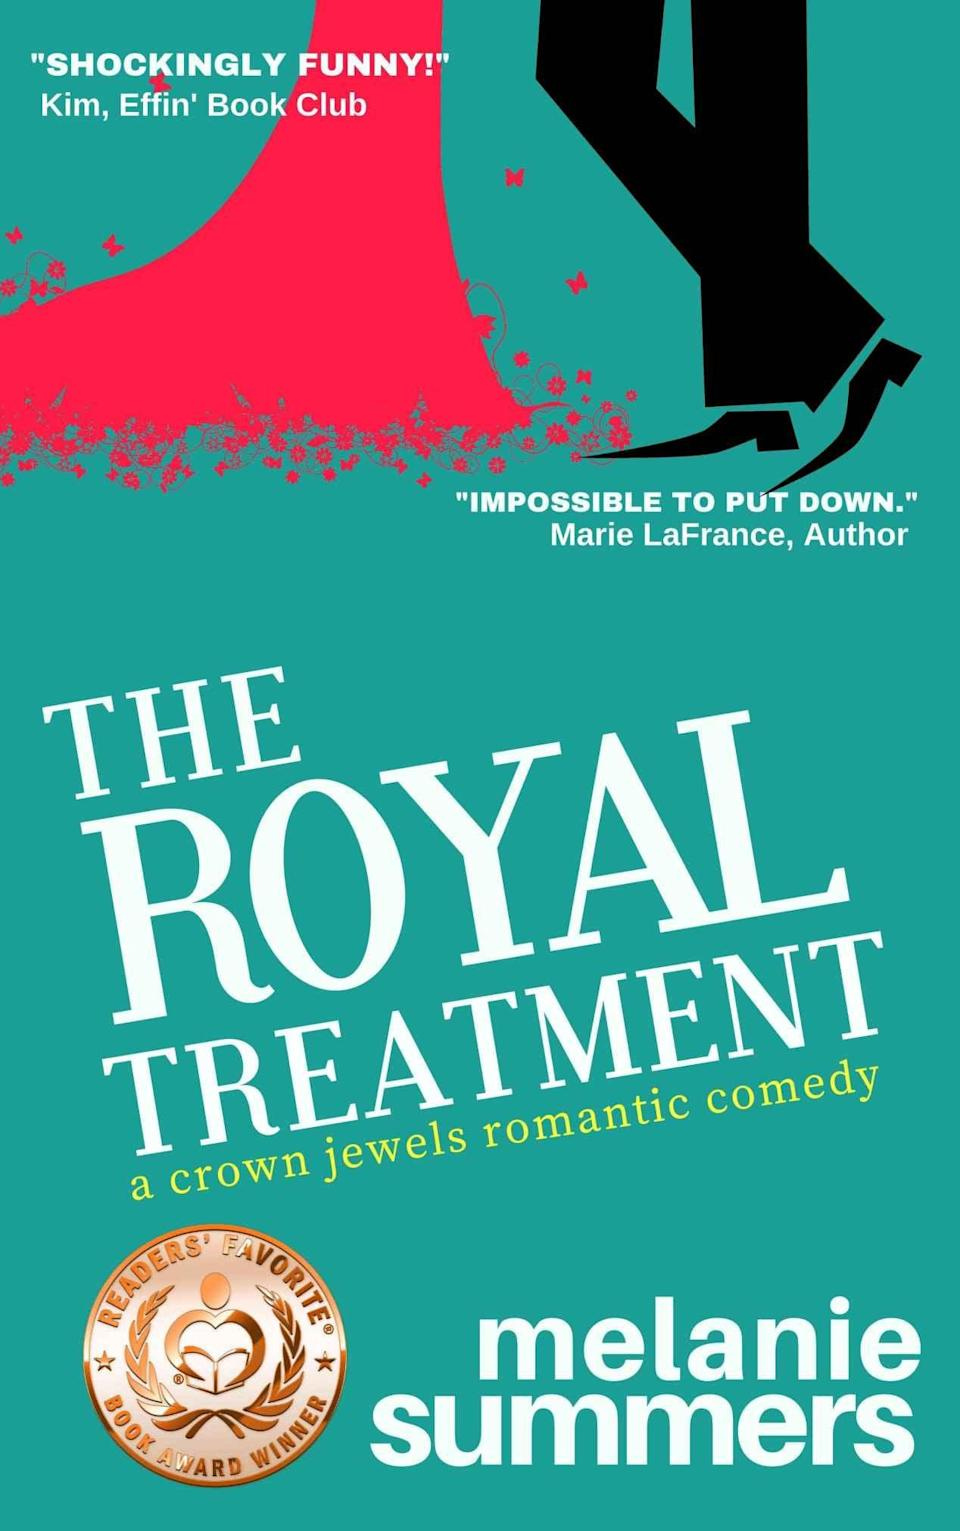 <p>If you like your rom-coms with a side of royalty, look no further than <span><strong>The Royal Treatment</strong> by Melanie Summers</span> ($14). Wannabe journalist Tessa has made a name for herself as a popular critical blogger of Avonia's royal family. So when Prince Arthur himself invites Tessa to come stay with his family for the summer as part of a PR ploy to get her to change her (and her follower's) opinion of them, she accepts, expecting to uncover some real dirt. What she doesn't expect is falling in love with the prince.</p> <p>I know <strong><span>The Royal We</span></strong> is the fan favorite for royal romances (and one I also enjoyed!), but I did find the tone more serious compared to <strong>The Royal Treatment</strong>. When it comes down to a lighthearted love story with some comedic moments, this is it!</p>